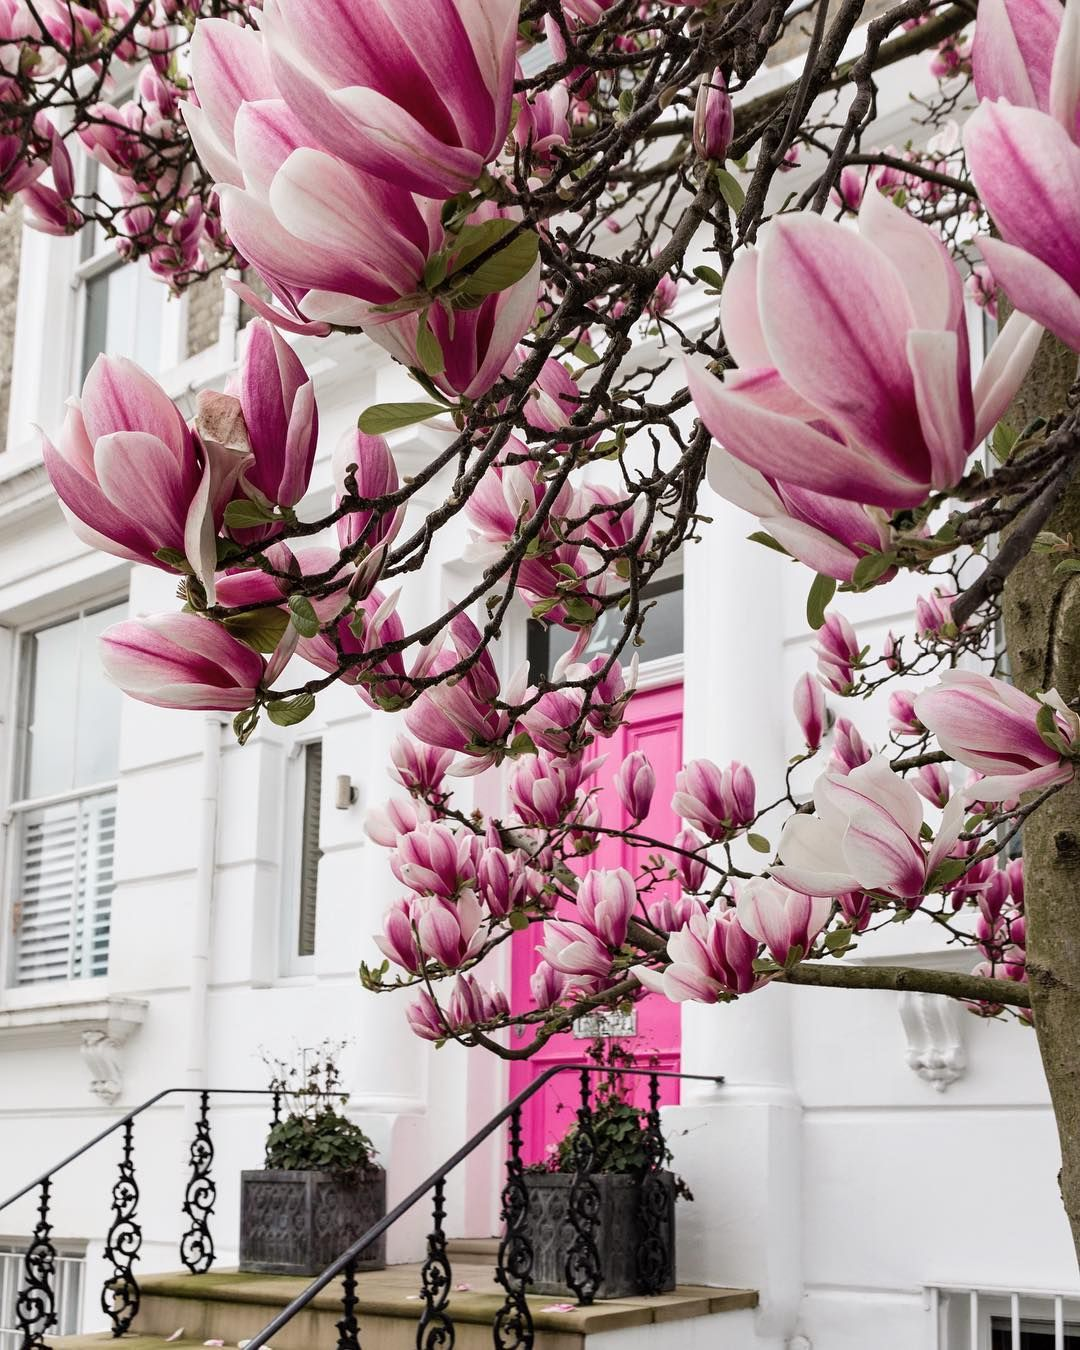 Magnolia Blooms Holland Park London England By Michael Sparrow Sparrowinlondon On Instagram Flowering Trees Late Bloomer Instagram